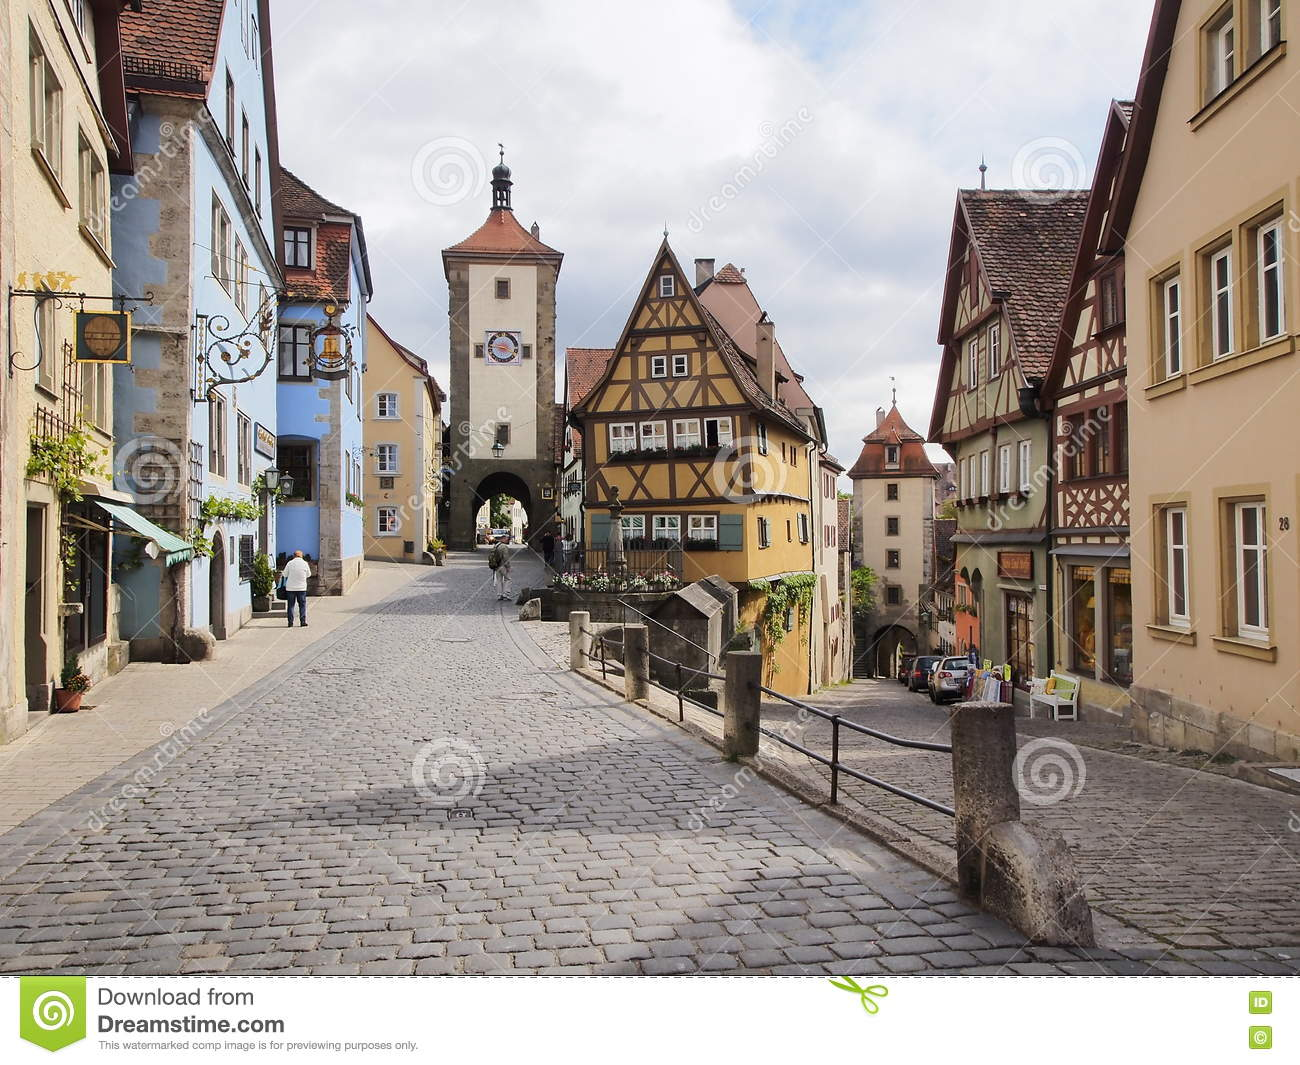 rothenburg ob der tauber malerische mittelalterliche stadt in deutschland redaktionelles. Black Bedroom Furniture Sets. Home Design Ideas